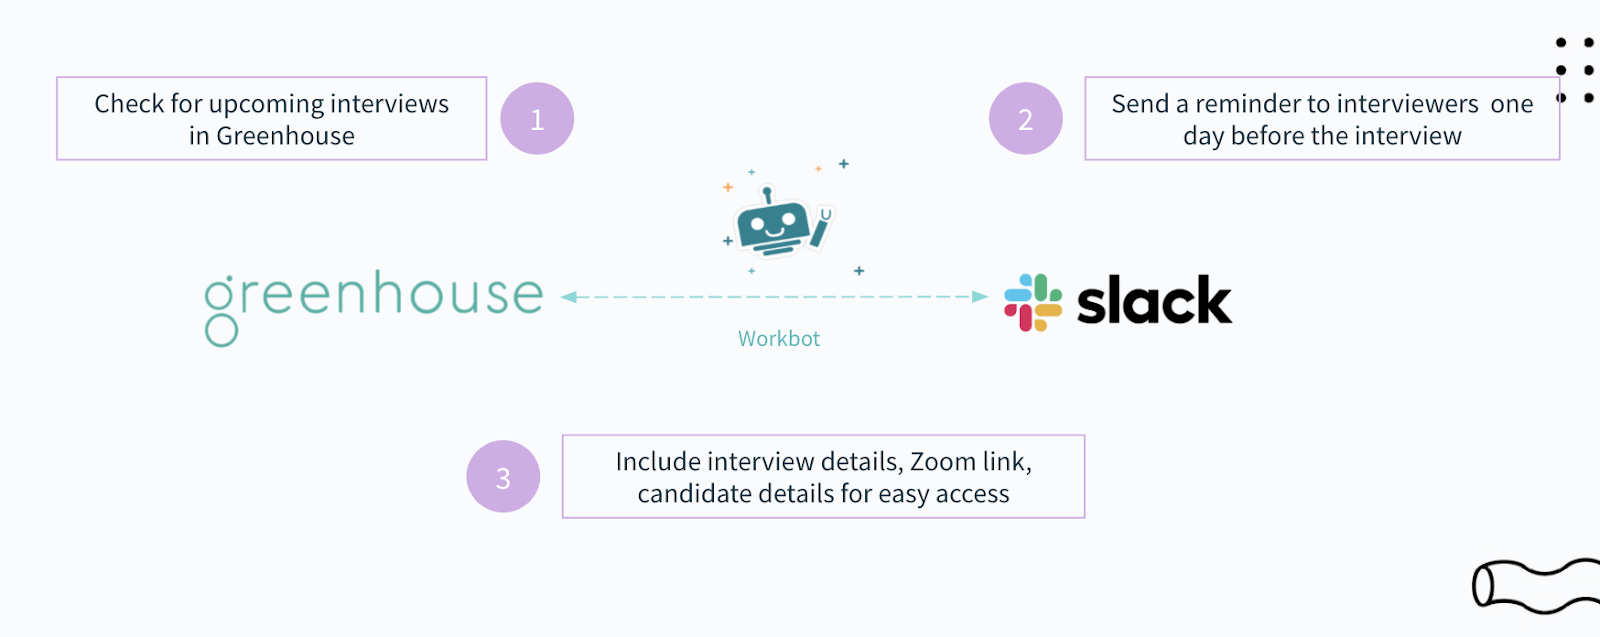 An example of a workflow automation for interviewing candidates.